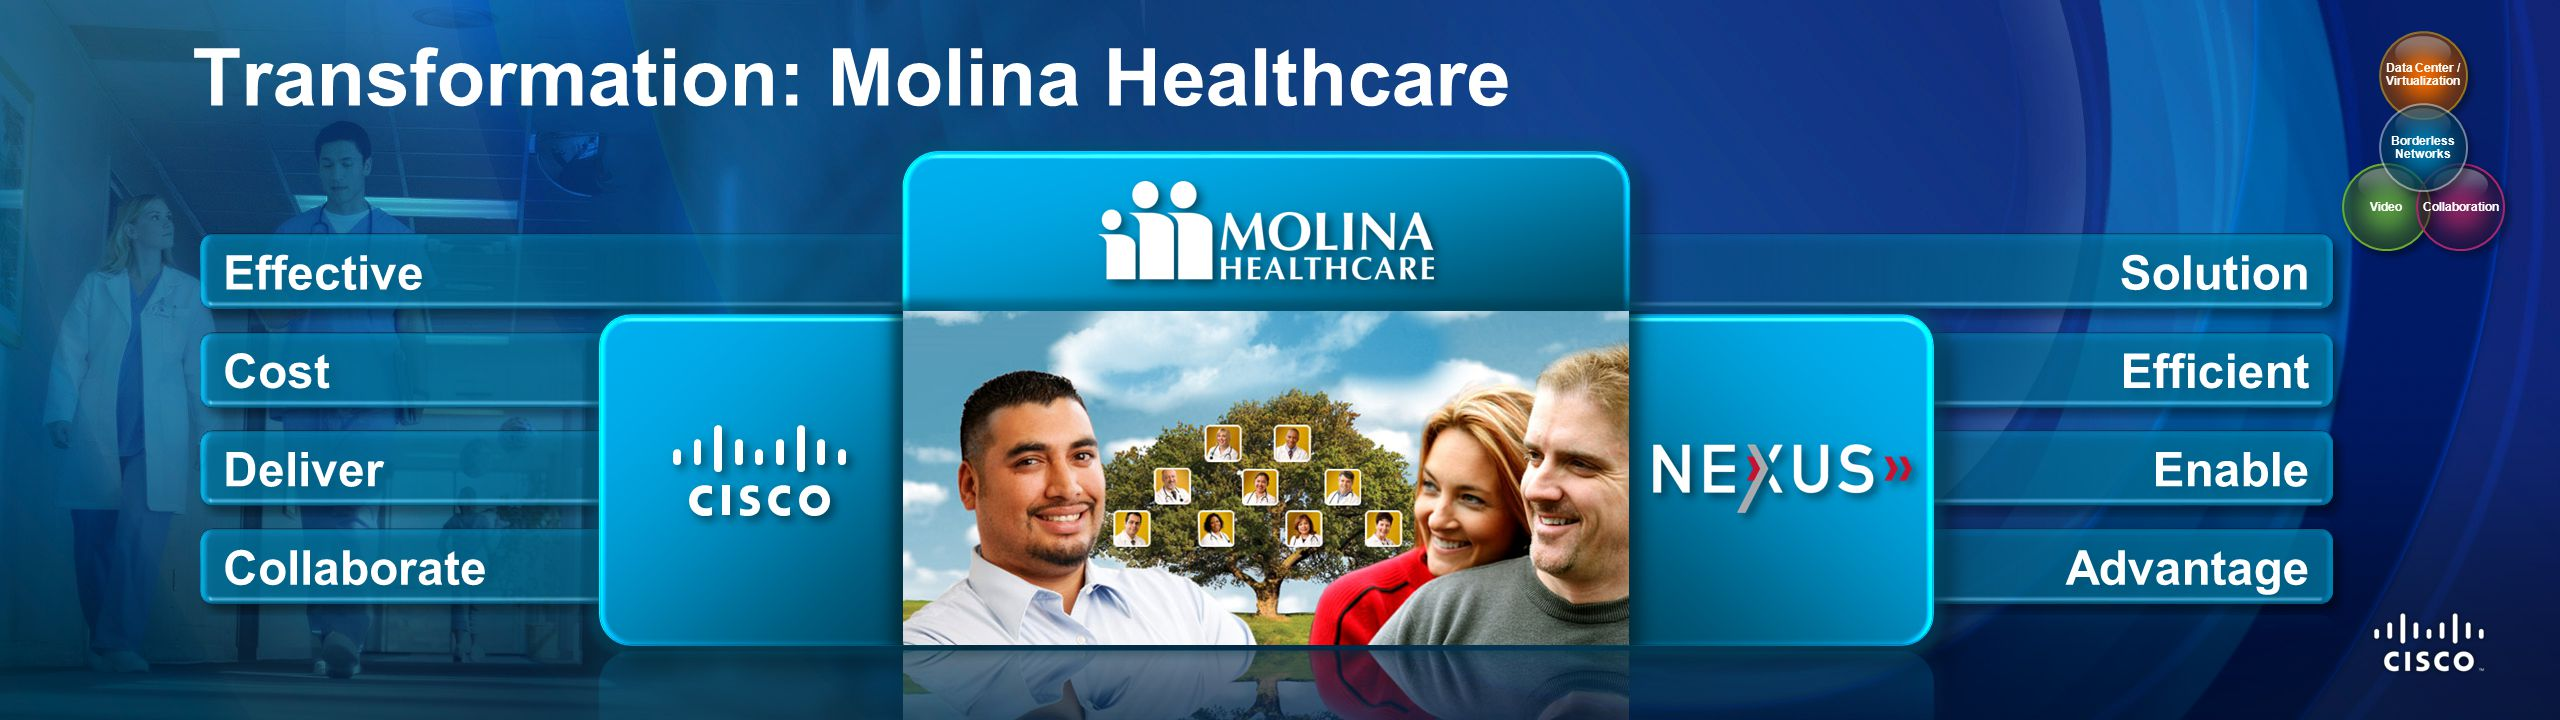 Transformation: Molina Healthcare Video Data Center / Virtualization Collaboration Borderless Networks